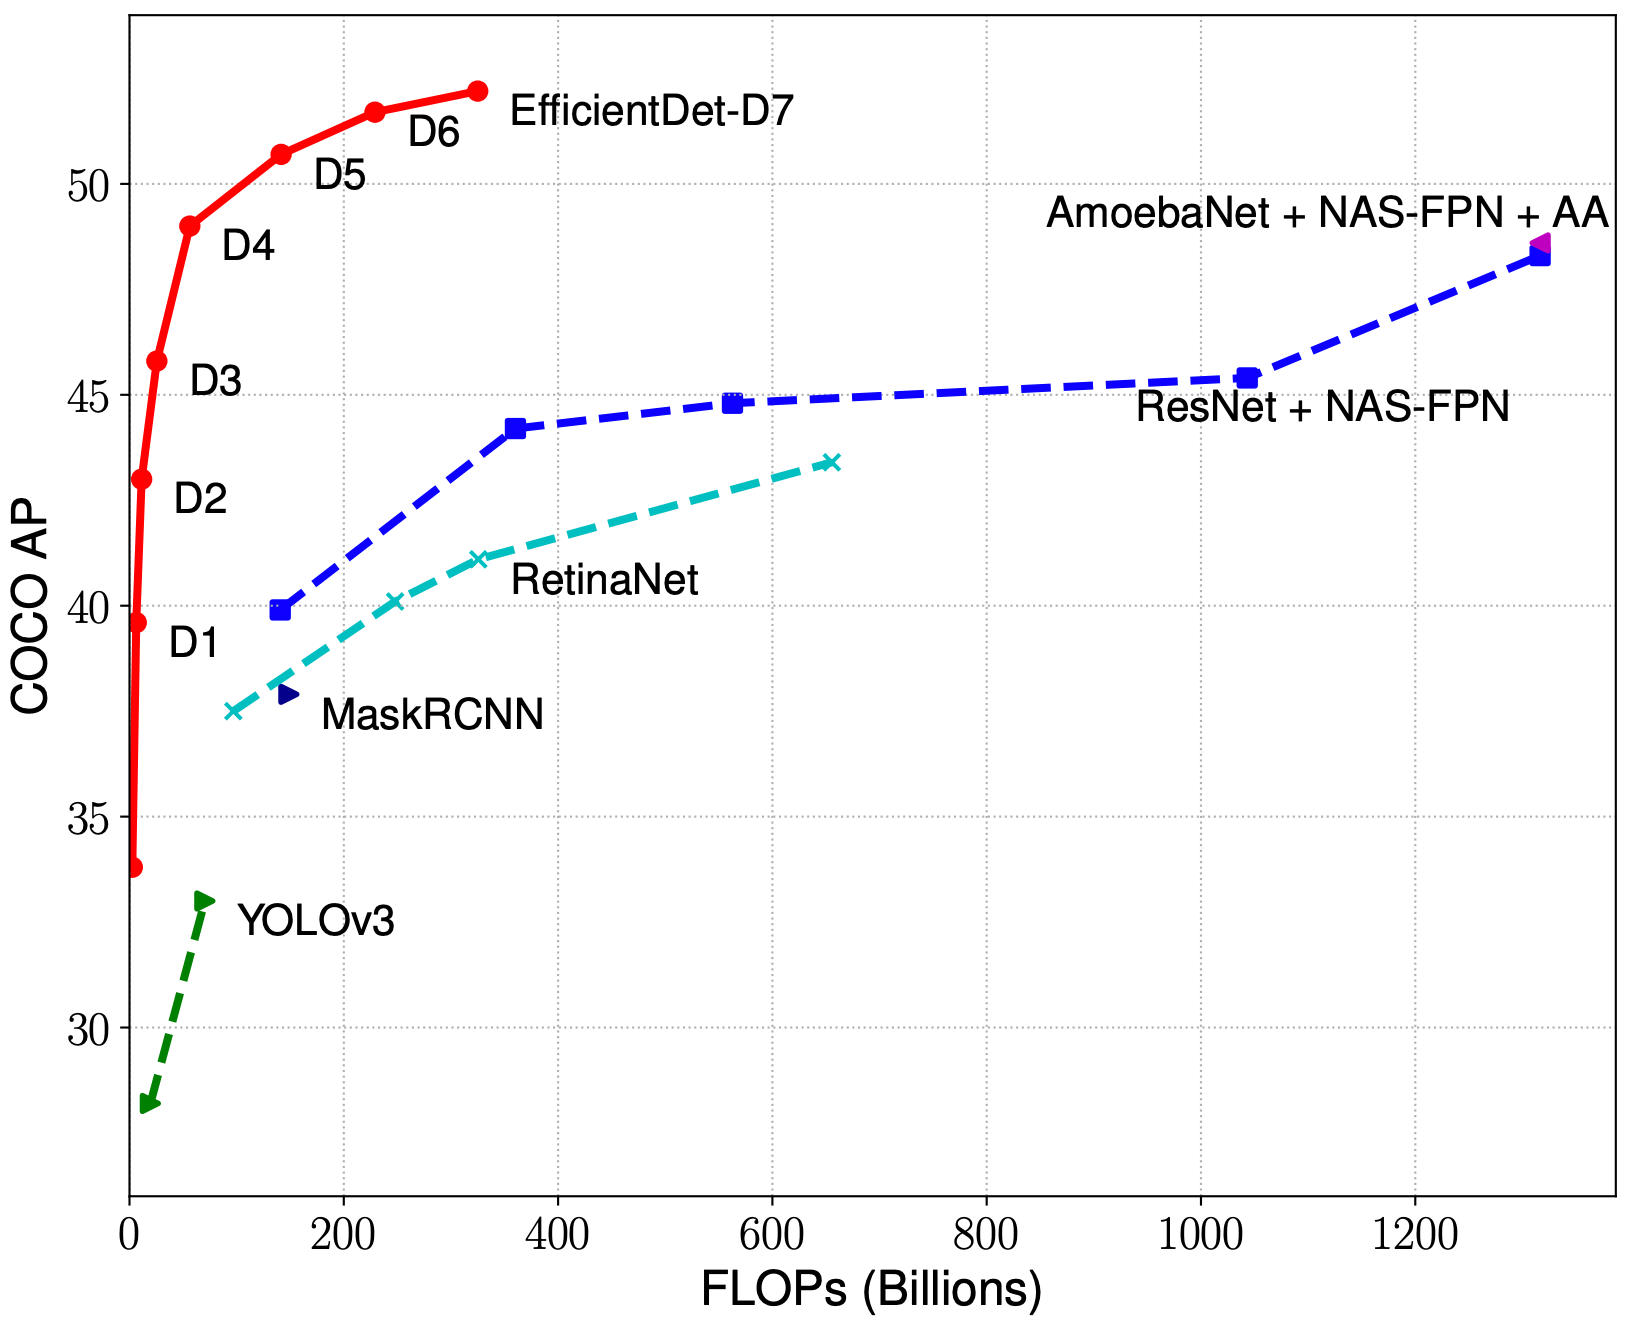 COCO average precision vs Billion floating point operations (EfficientDet vs AmoebaNet vs Resnet vs MaskRCNN vs YOLOv3)